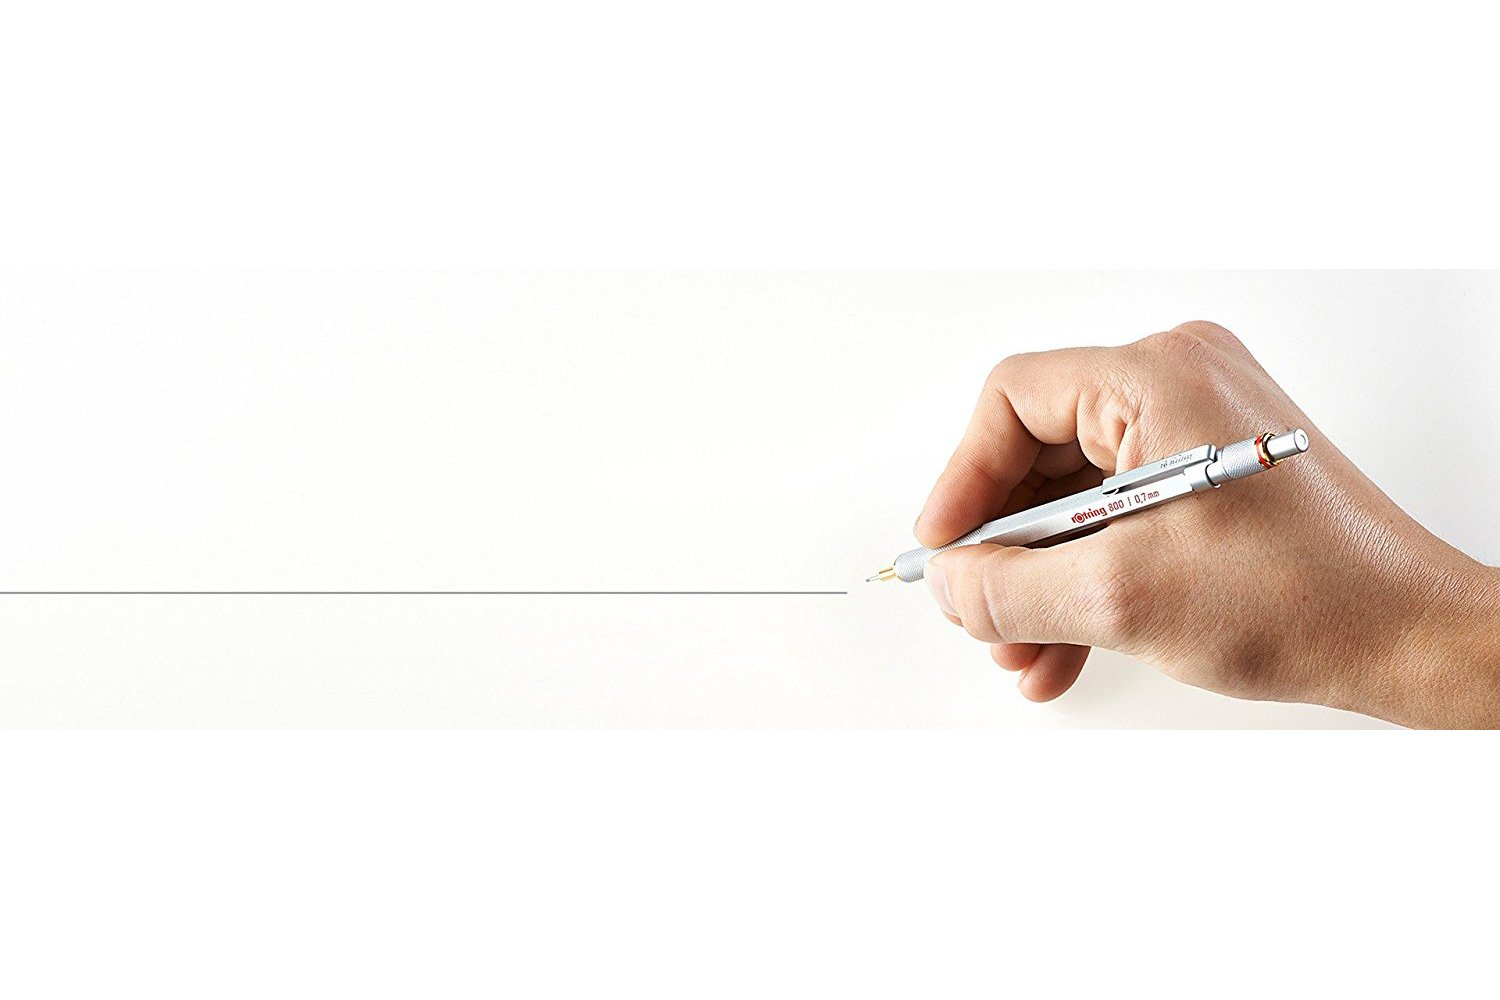 rOtring 1904449 800 Retractable Mechanical Pencil, 0.5 mm, Silver Barrel by Rotring (Image #6)